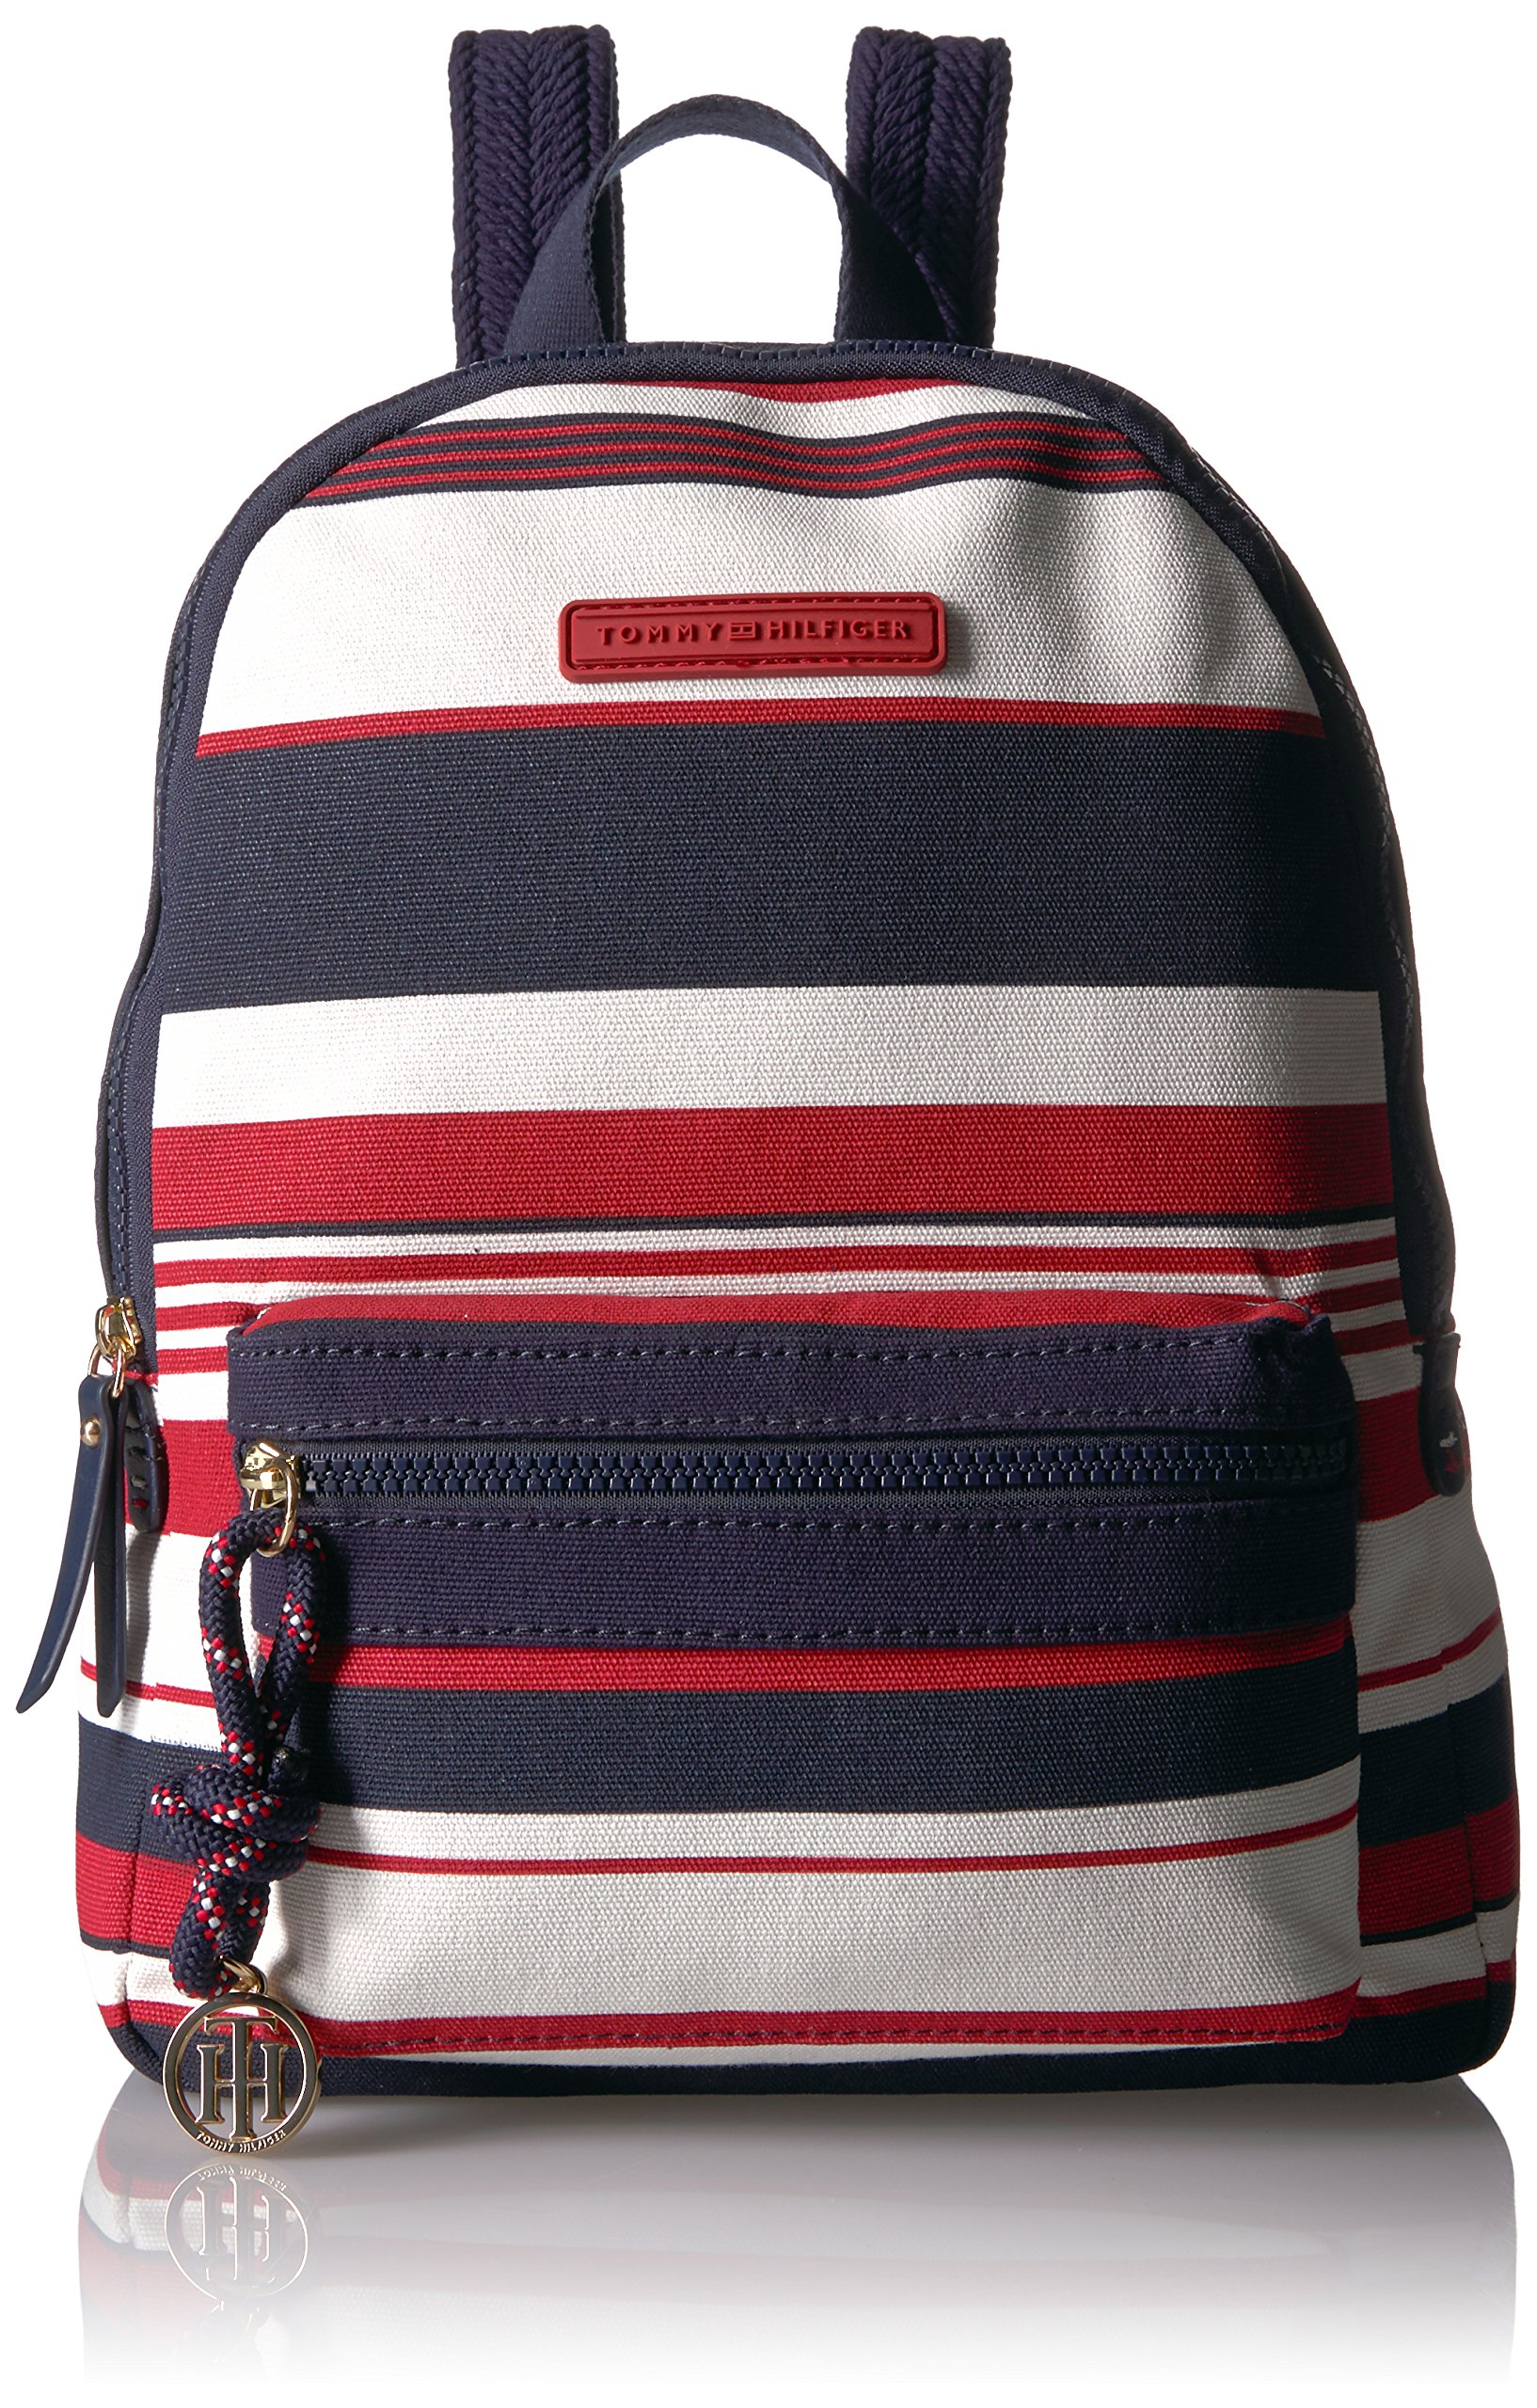 Tommy Hilfiger Women's Backpack Dariana, Navy/Red